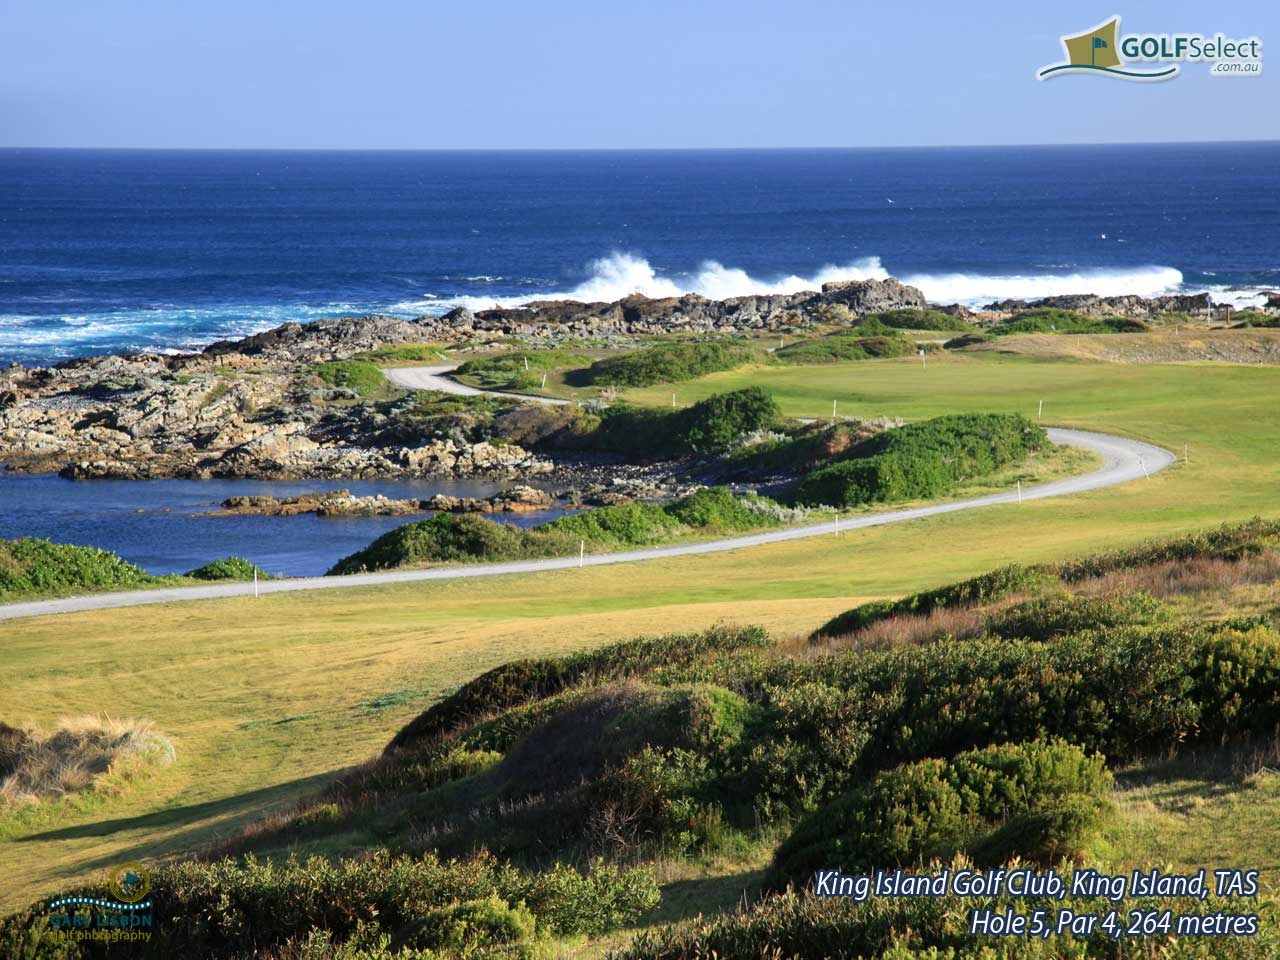 King Island Golf Club Hole 5, Par 4, 268 metres